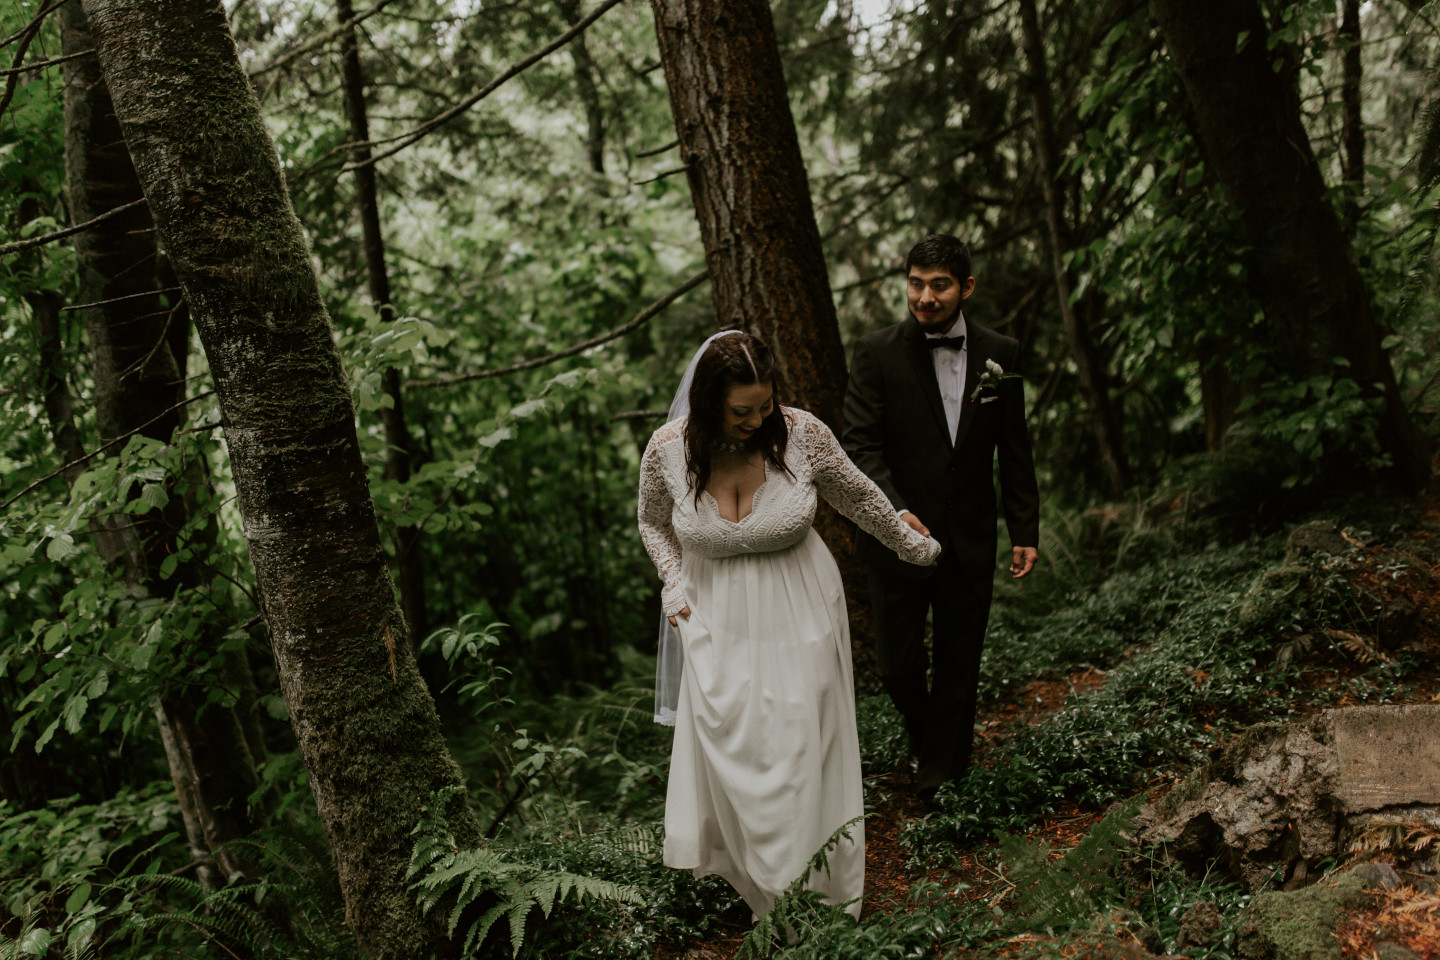 Sarah leads Sam through the forest at Skamania House, Washington. Elopement photography in Portland Oregon by Sienna Plus Josh.